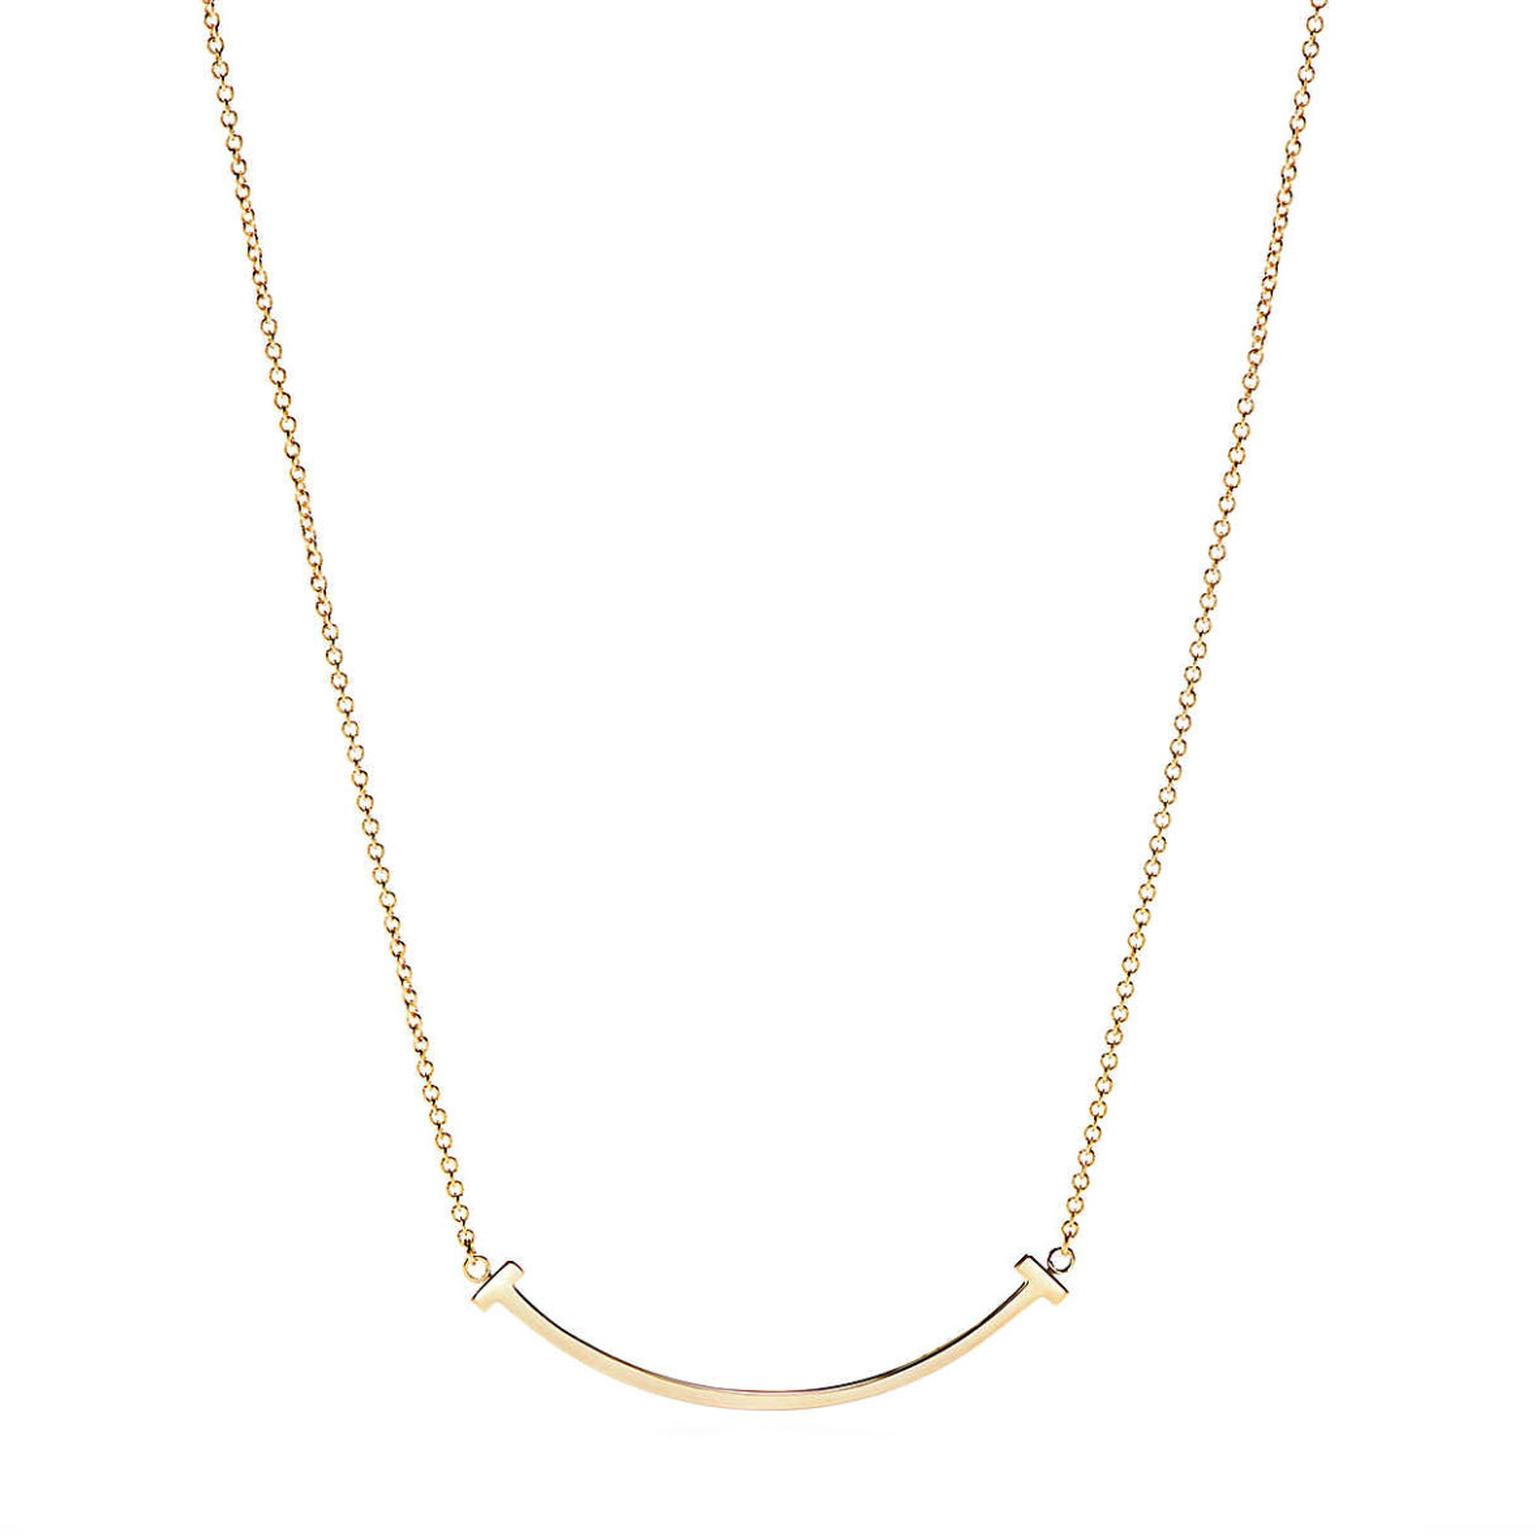 Tiffany T Mini Smile pendant in yellow gold